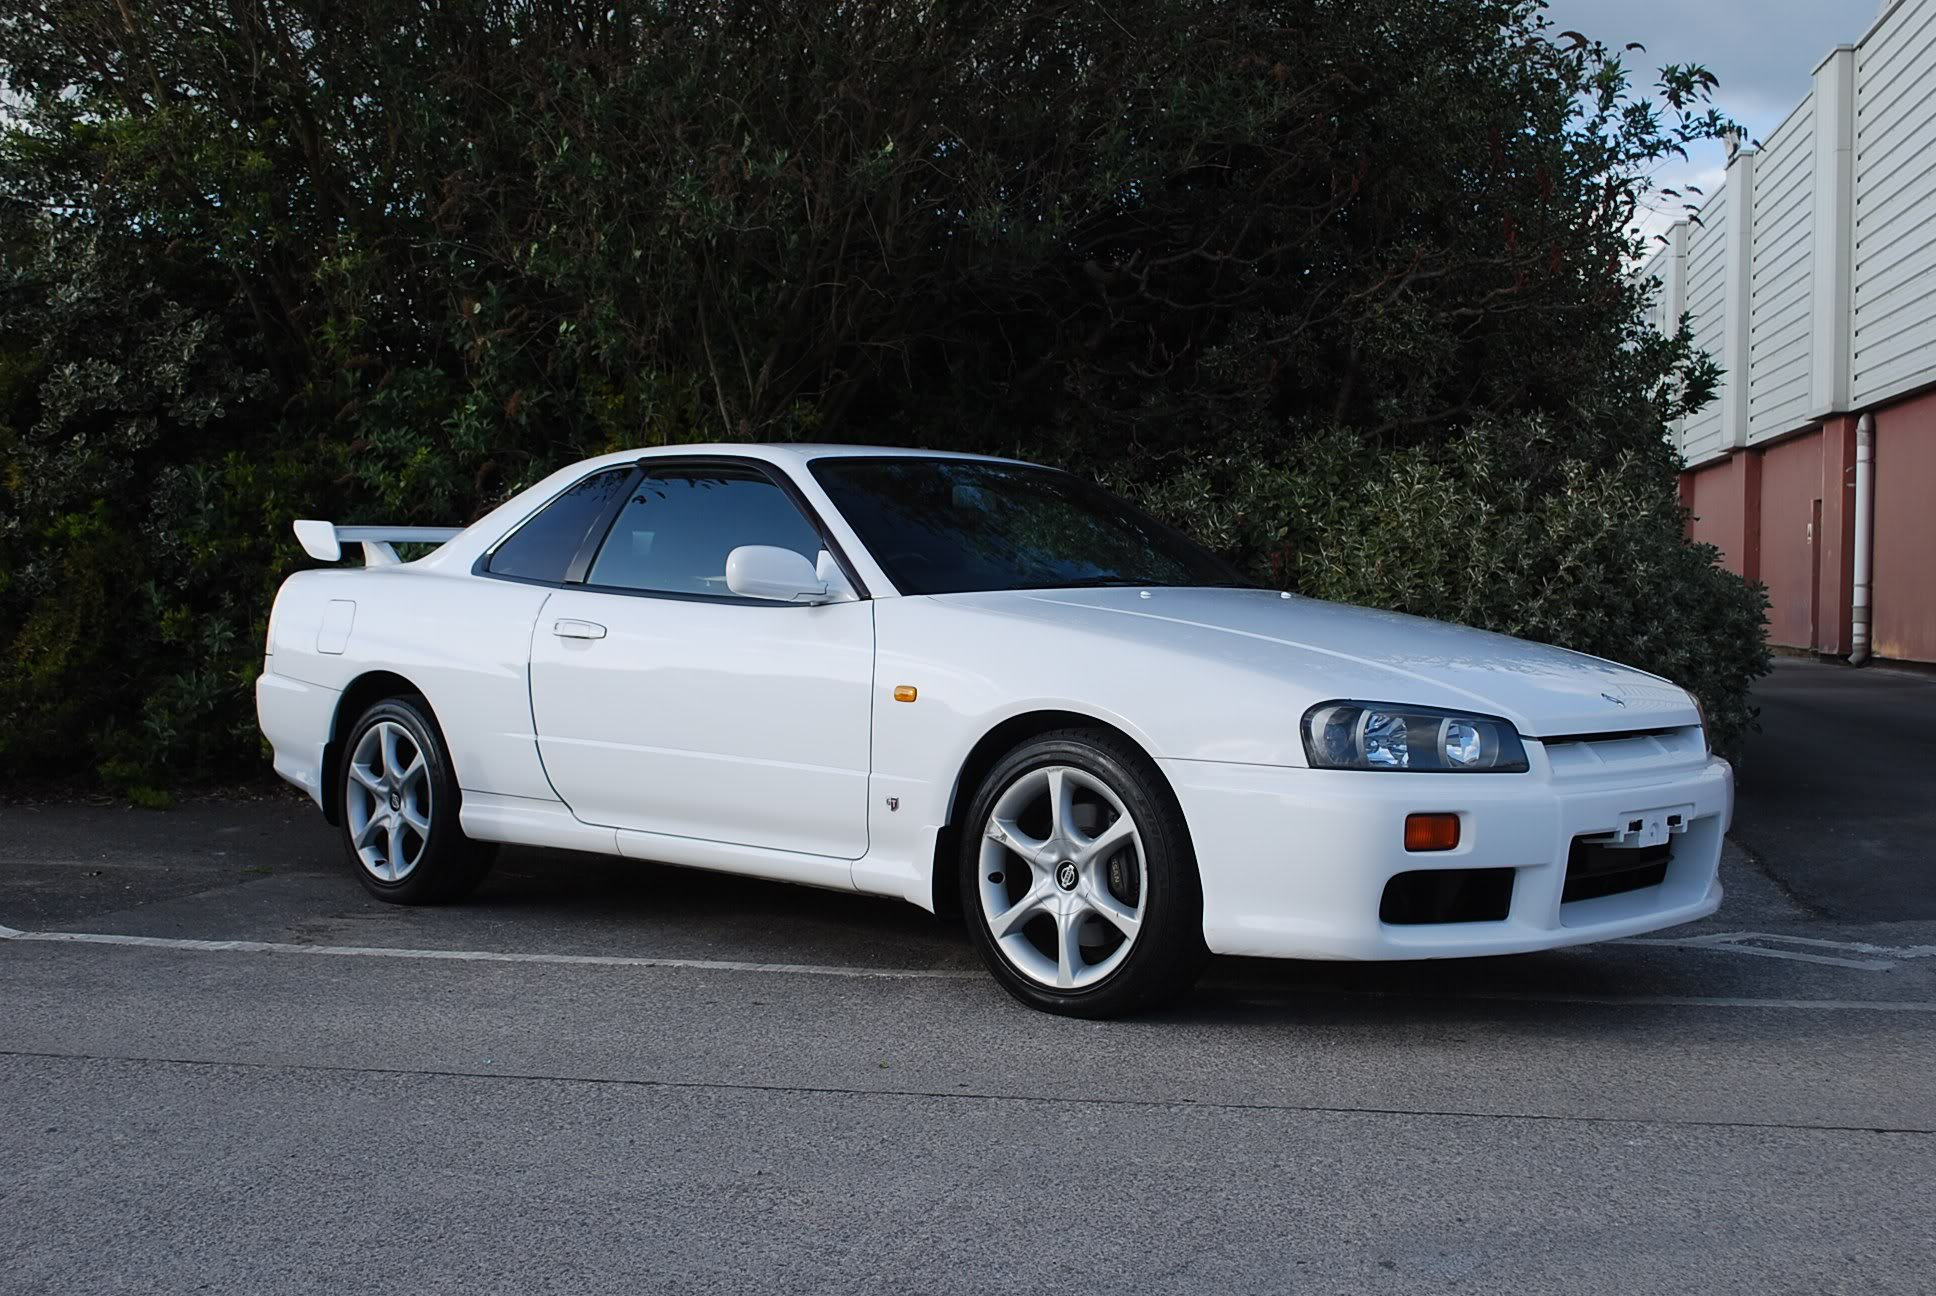 I Think The Nissan Skyline R34 Gt T Isnt Getting That Much Love I Think Its Pretty Cool Even